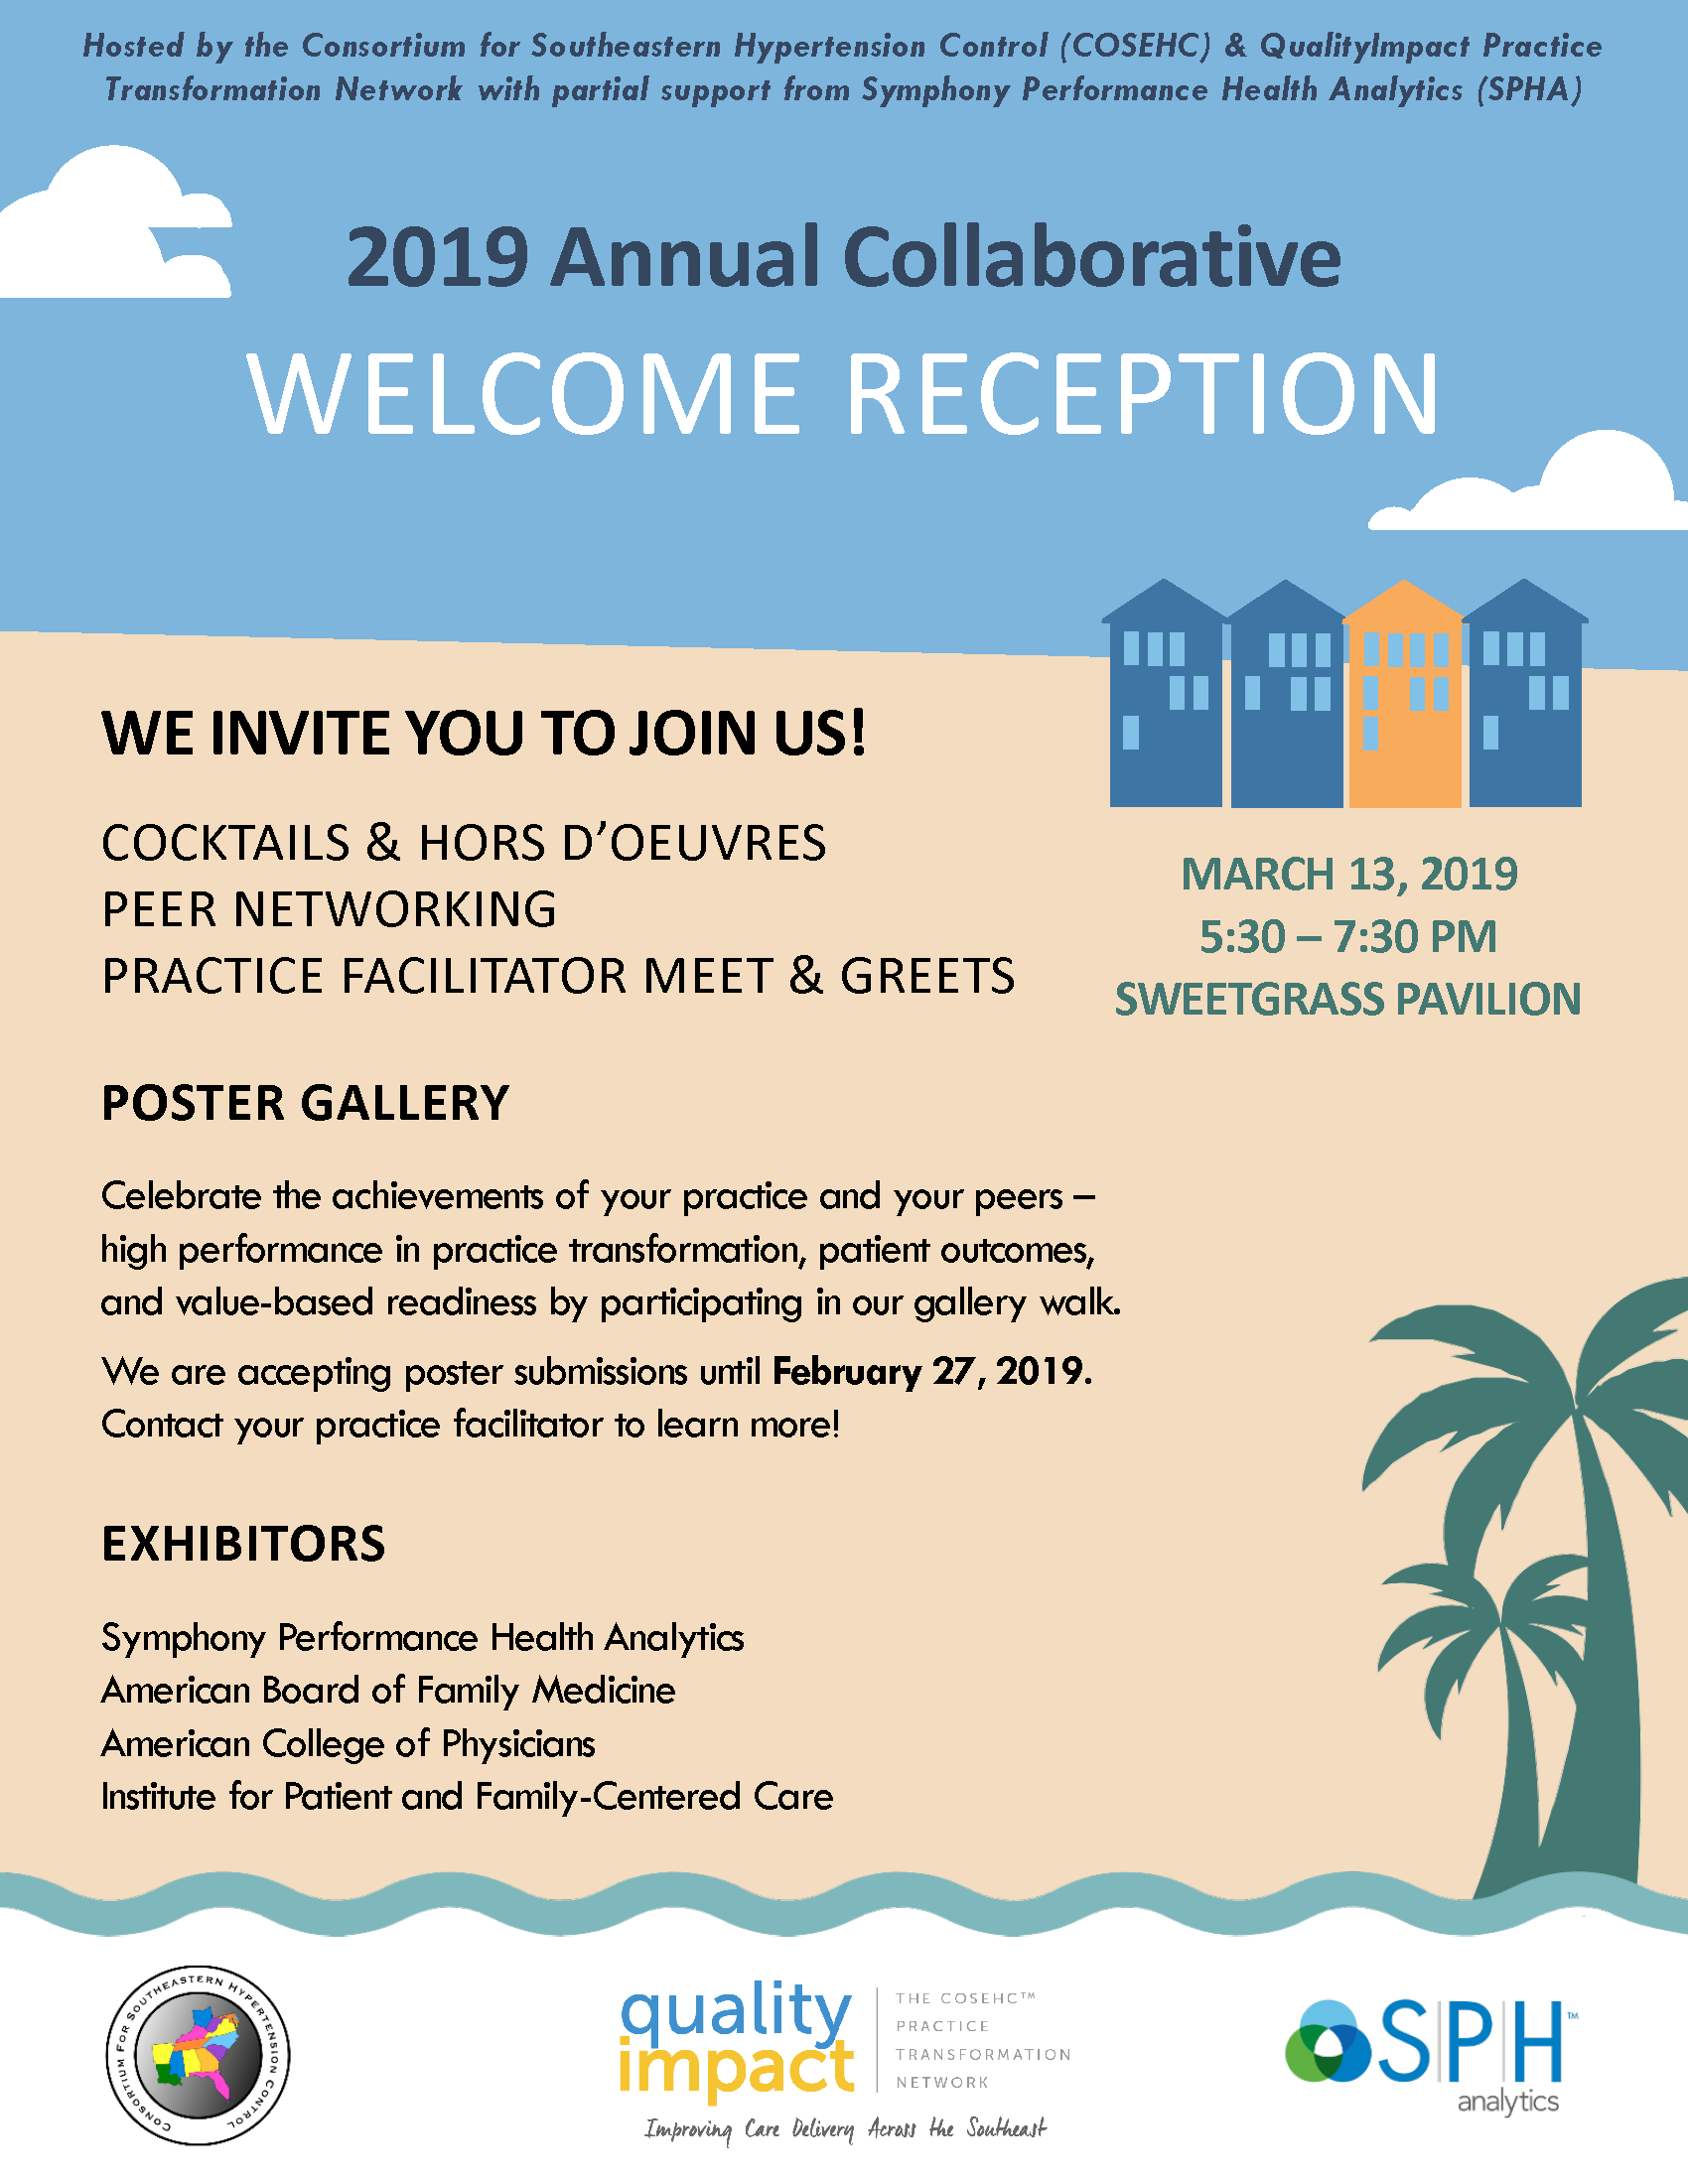 QualityImpact 2019 Collaborative Welcome Reception_You're Invited!.png